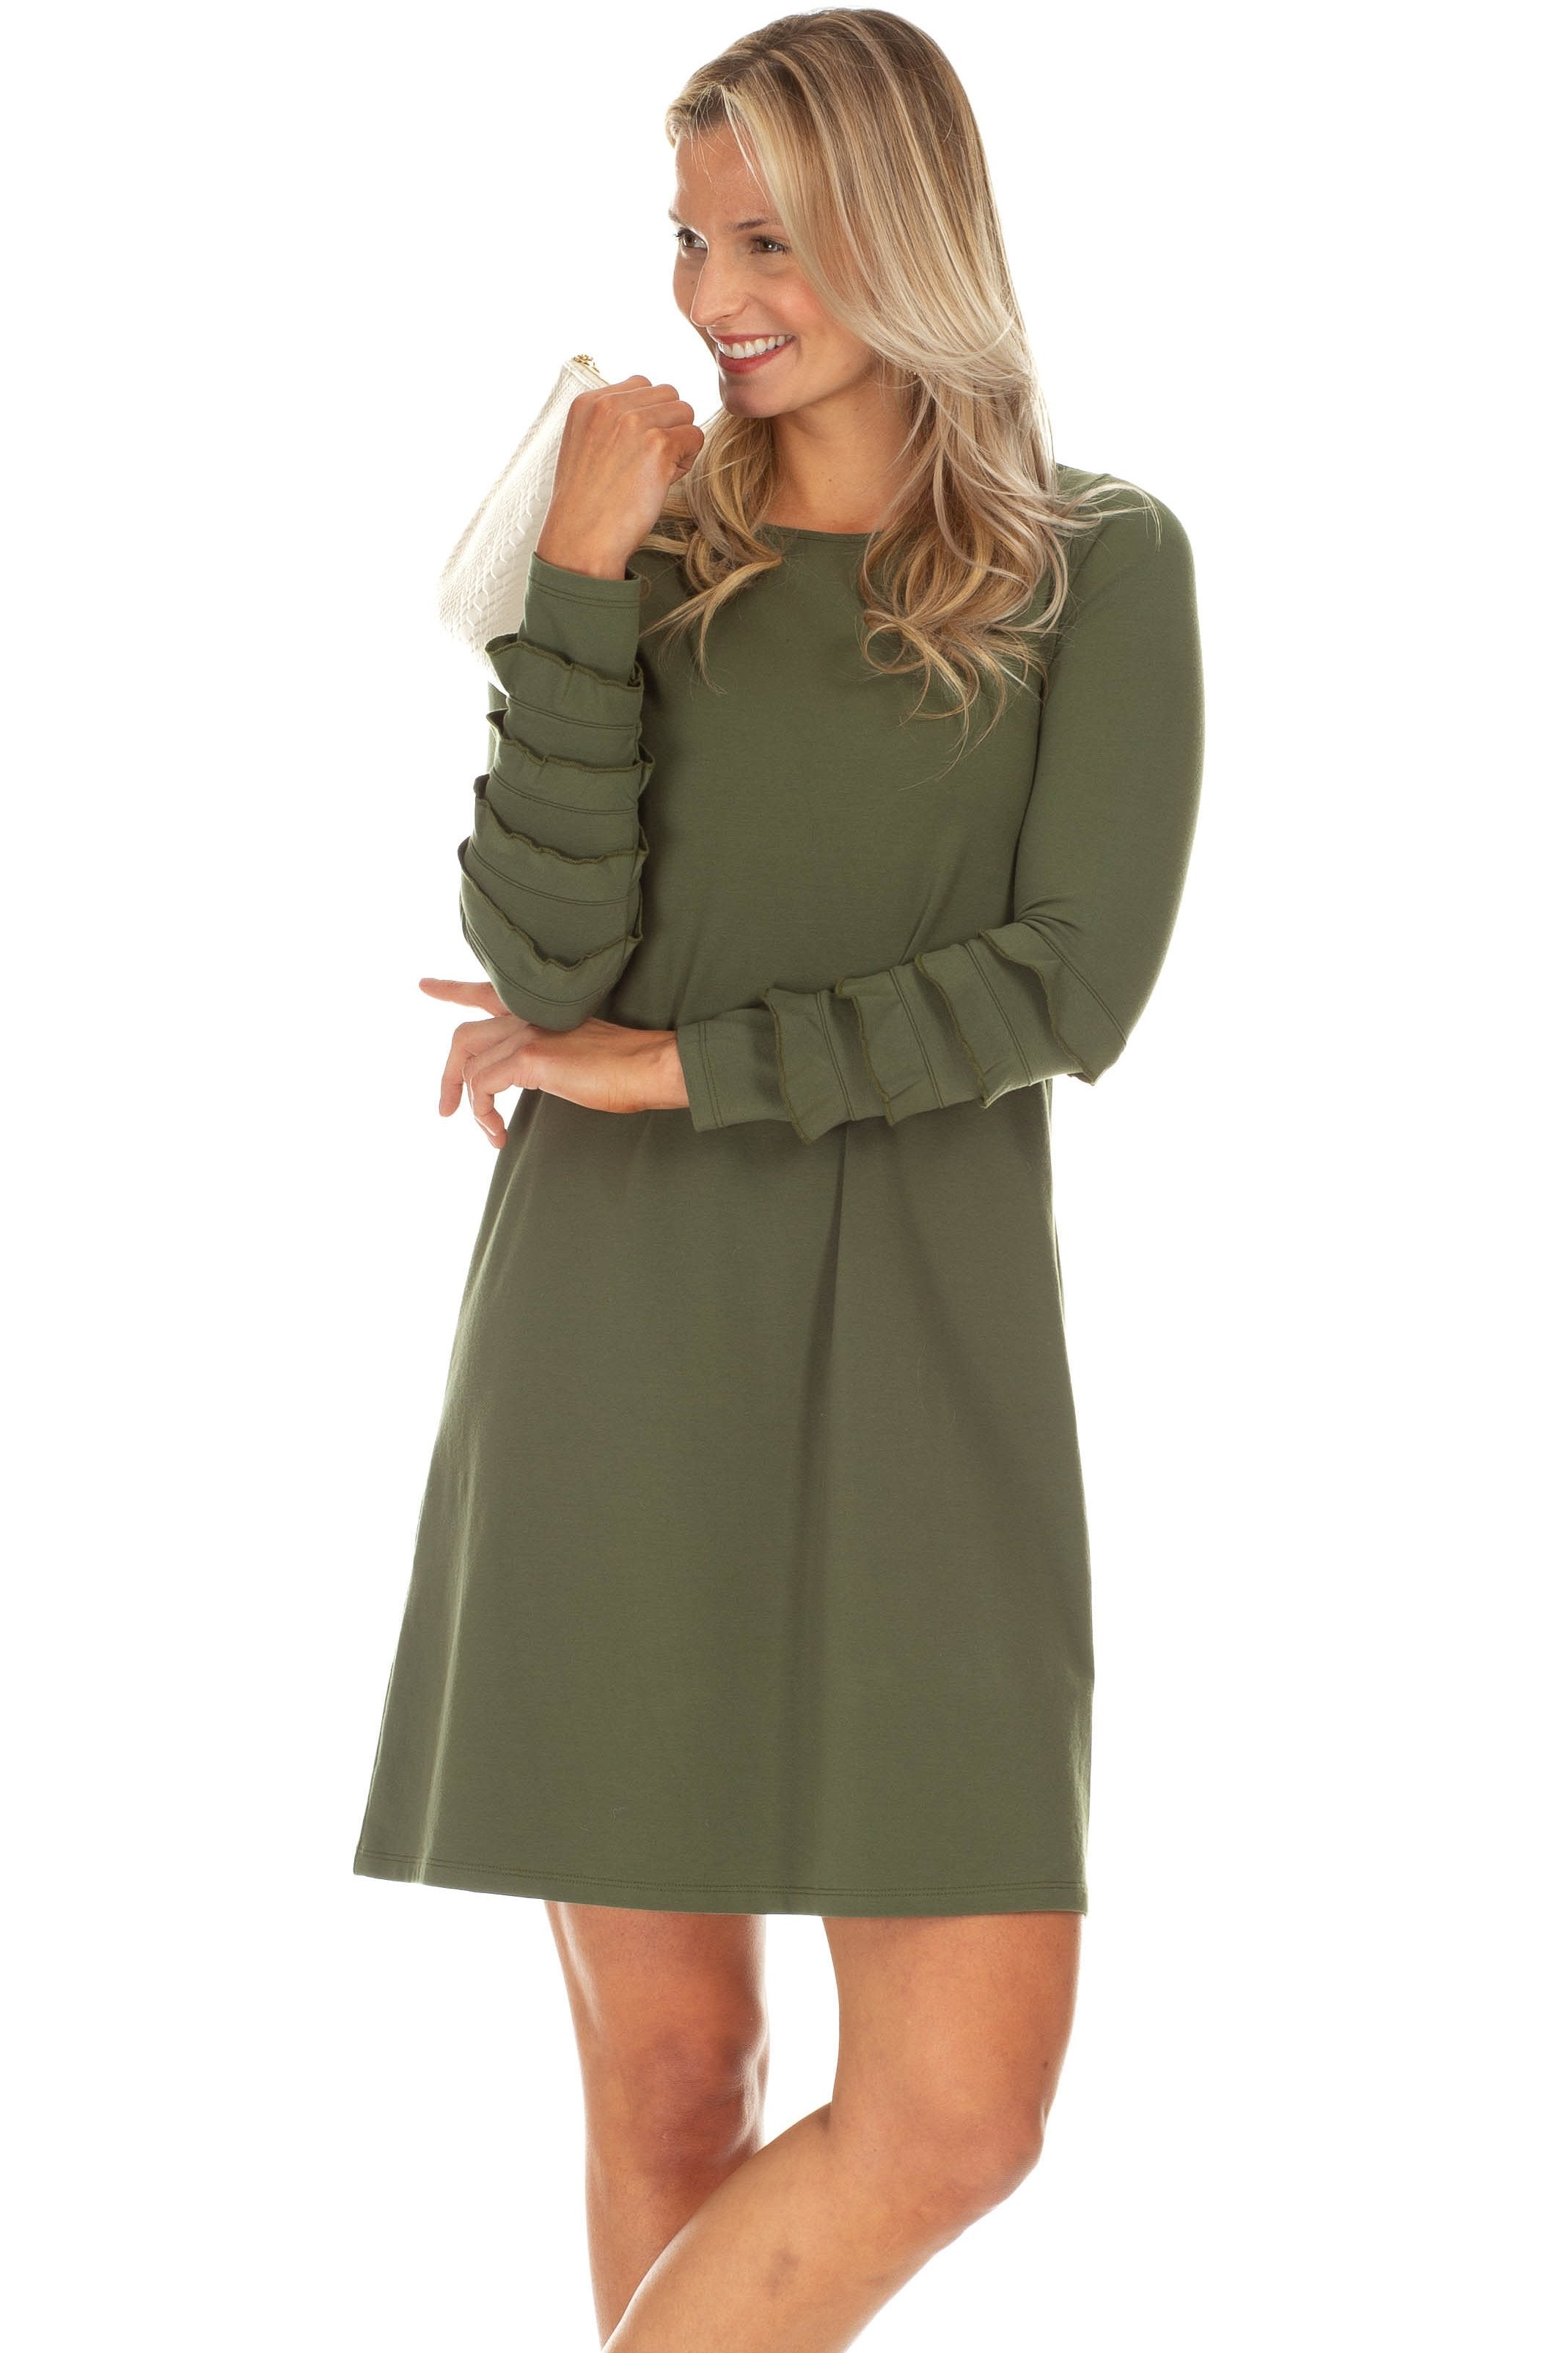 DUFFIELD LANE RADCLIFF OLIVE DRESS